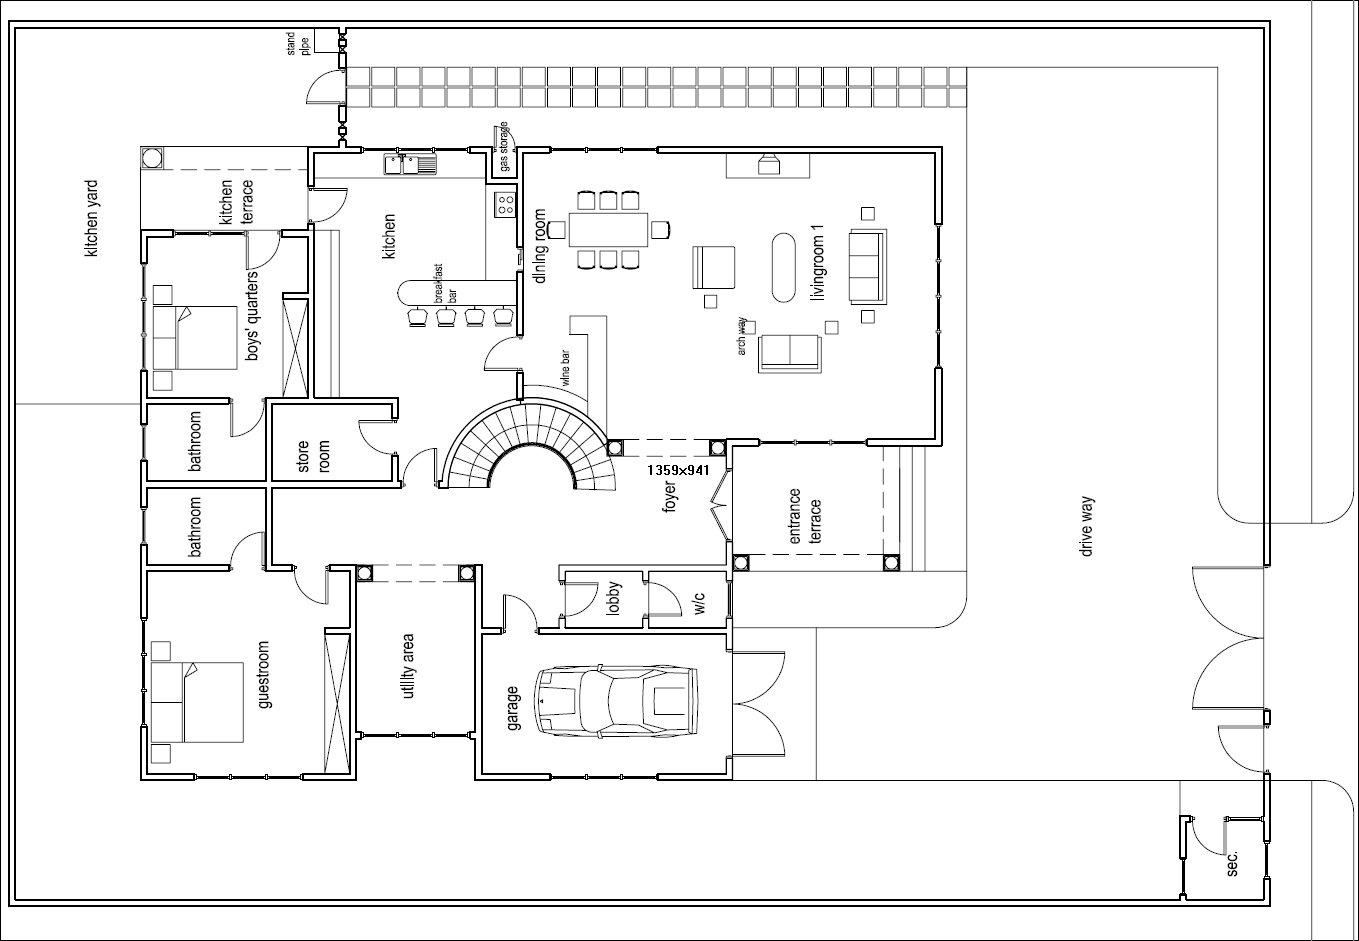 Ransford Ghana House Plans   Free Online Image House Plans    Ghana Building Plans also Ghana House Plans as well Ground Floor Plan In Ghana besides Ghana